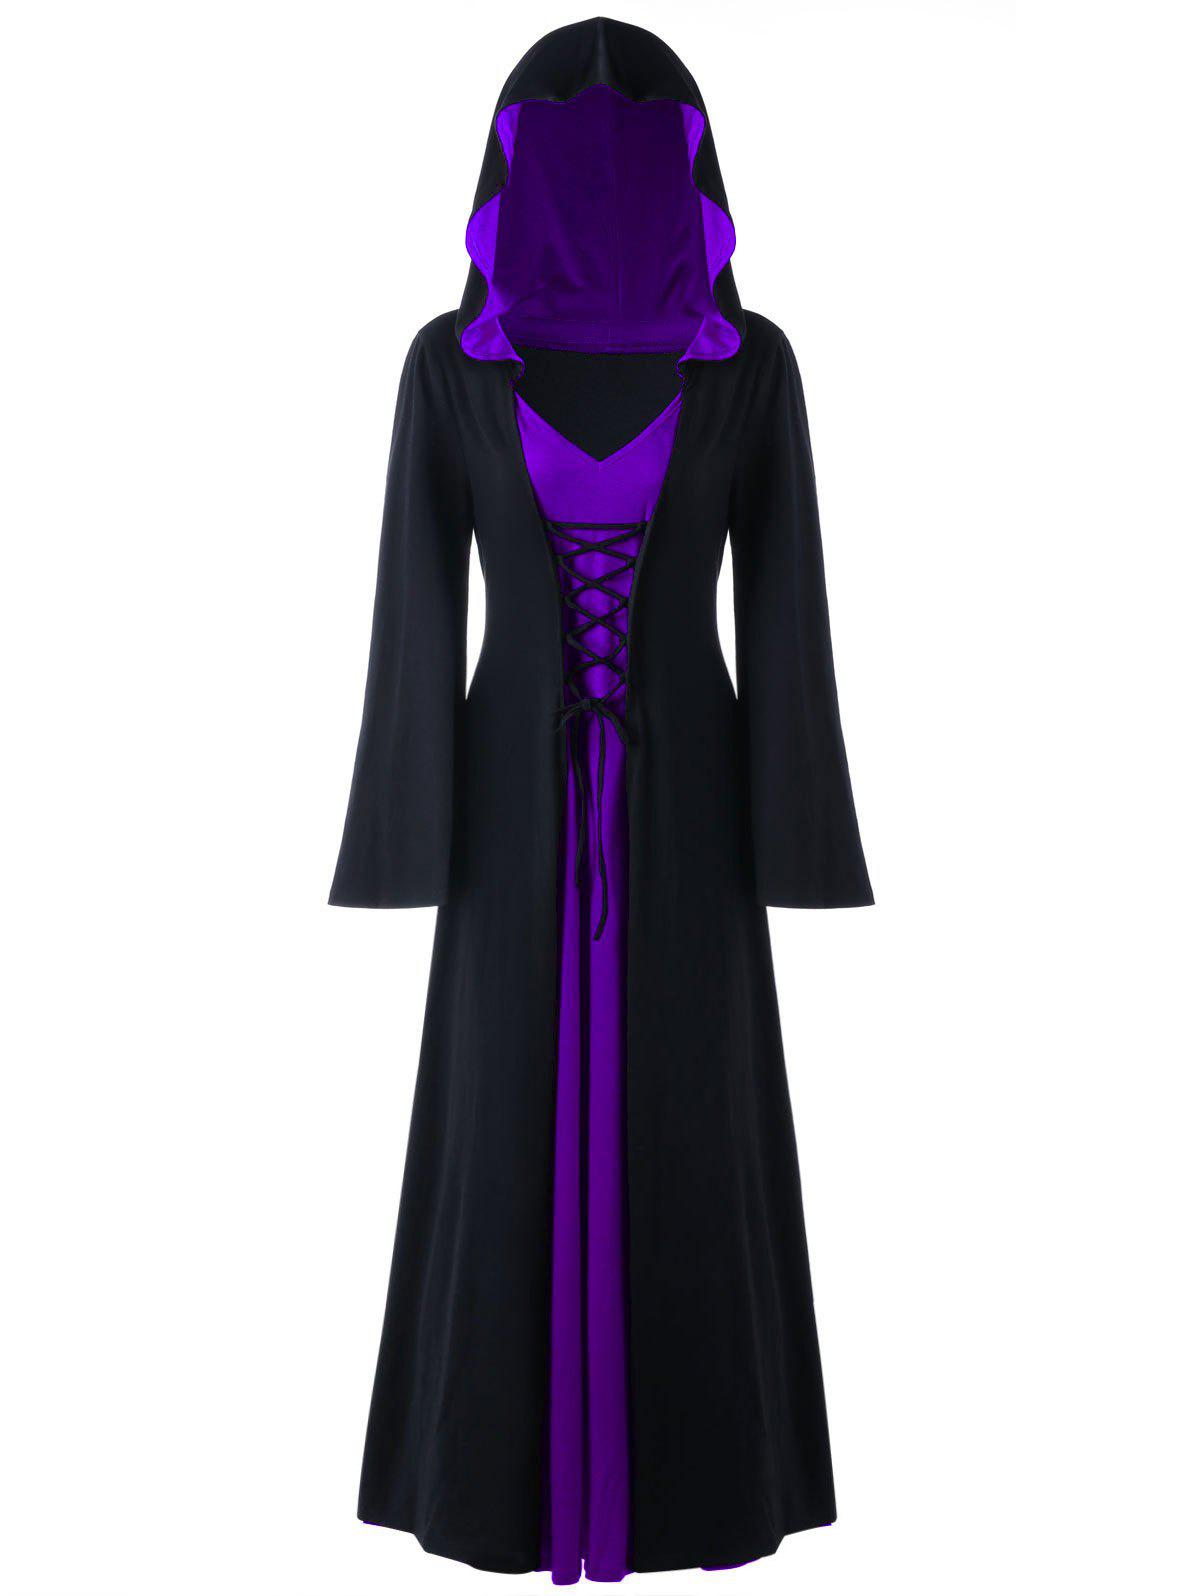 Halloween Plus Size Lace Up Hooded Maxi DressWOMEN<br><br>Size: 3XL; Color: PURPLE; Style: Novelty; Material: Polyester,Spandex; Silhouette: A-Line; Dresses Length: Ankle-Length; Neckline: Hooded; Sleeve Length: Long Sleeves; Pattern Type: Solid; With Belt: No; Season: Fall,Spring; Weight: 0.6700kg; Package Contents: 1 x Dress;